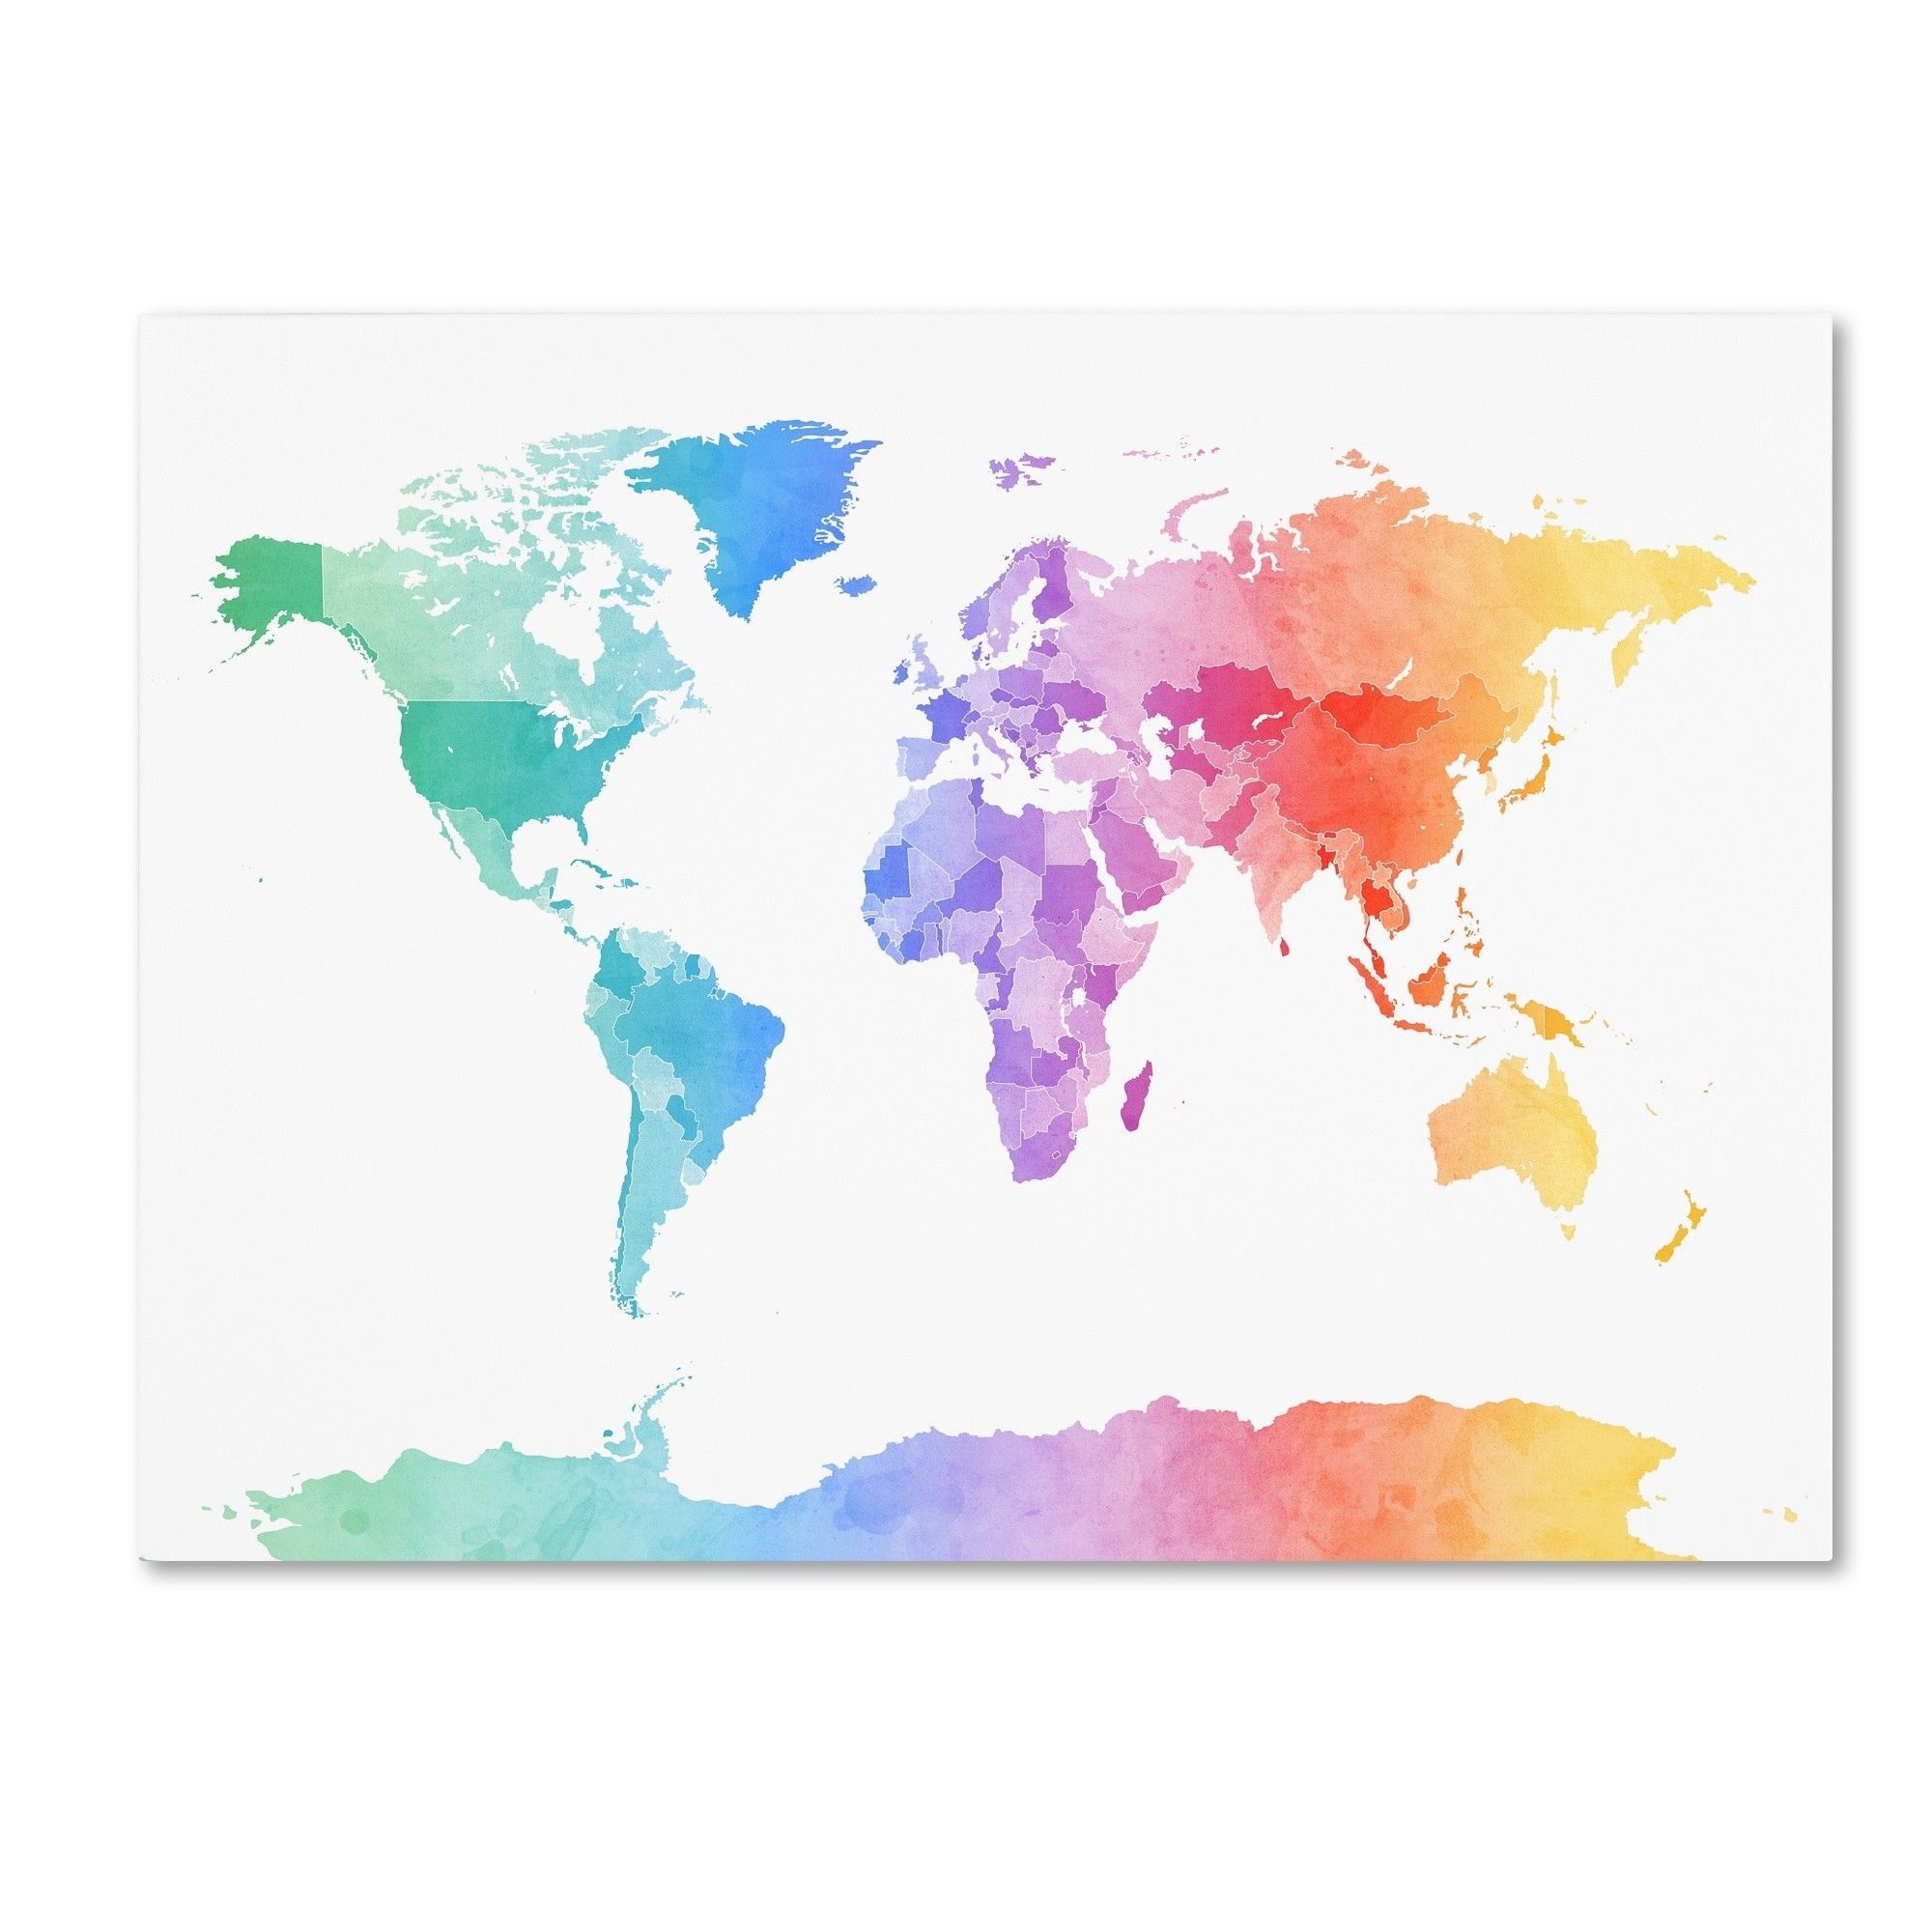 Map Of The World With Watercolor Texture Raster Illustration Stock ...